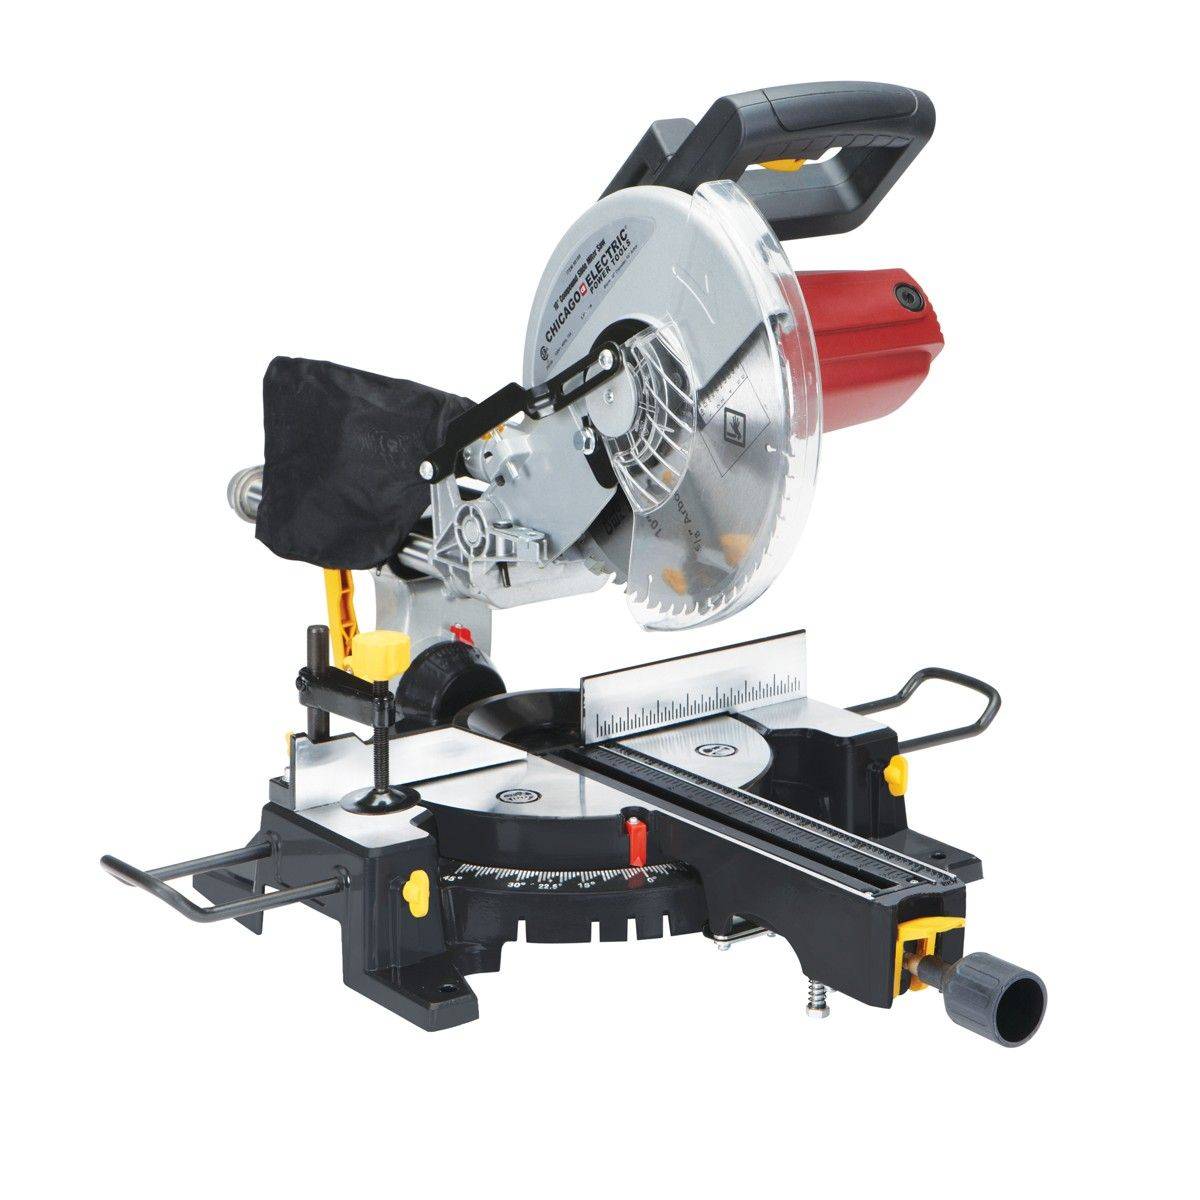 10 In Compound Miter Saw With Laser Guide System Sliding Compound Miter Saw Compound Mitre Saw Miter Saw